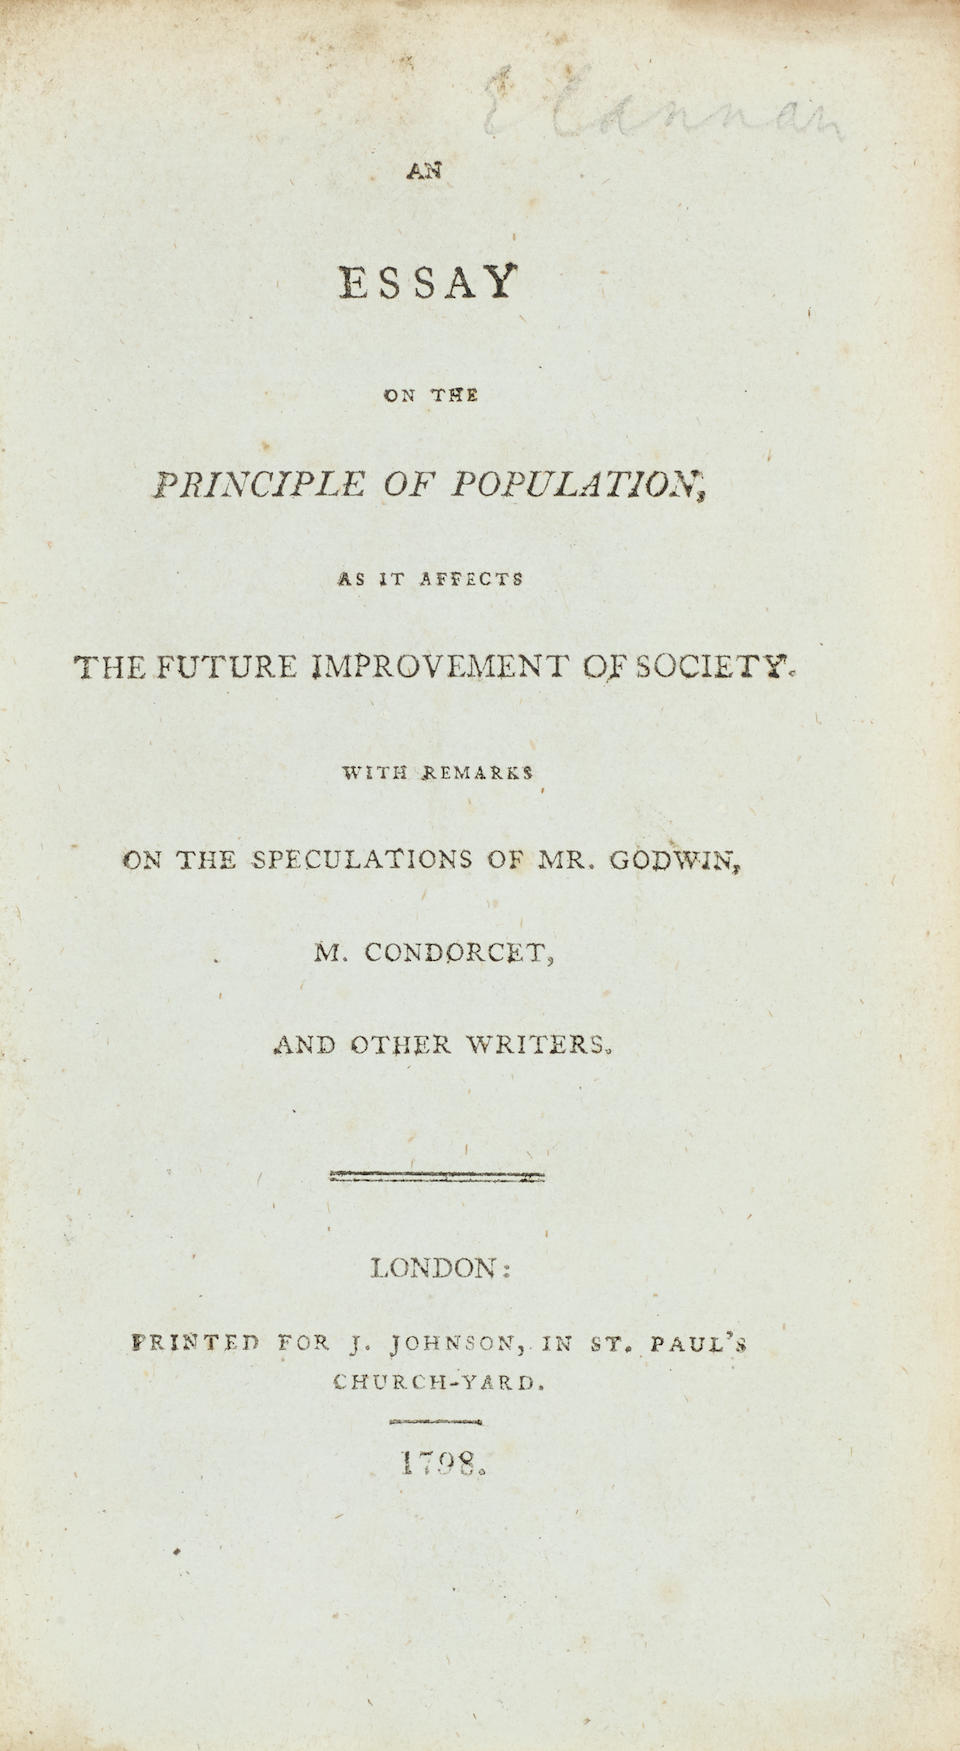 MALTHUS, THOMAS ROBERT. 1766-1834. An Essay on the Principle of Population, as It Affects the Future Improvement of Society.  London: J. Johnson, 1798.